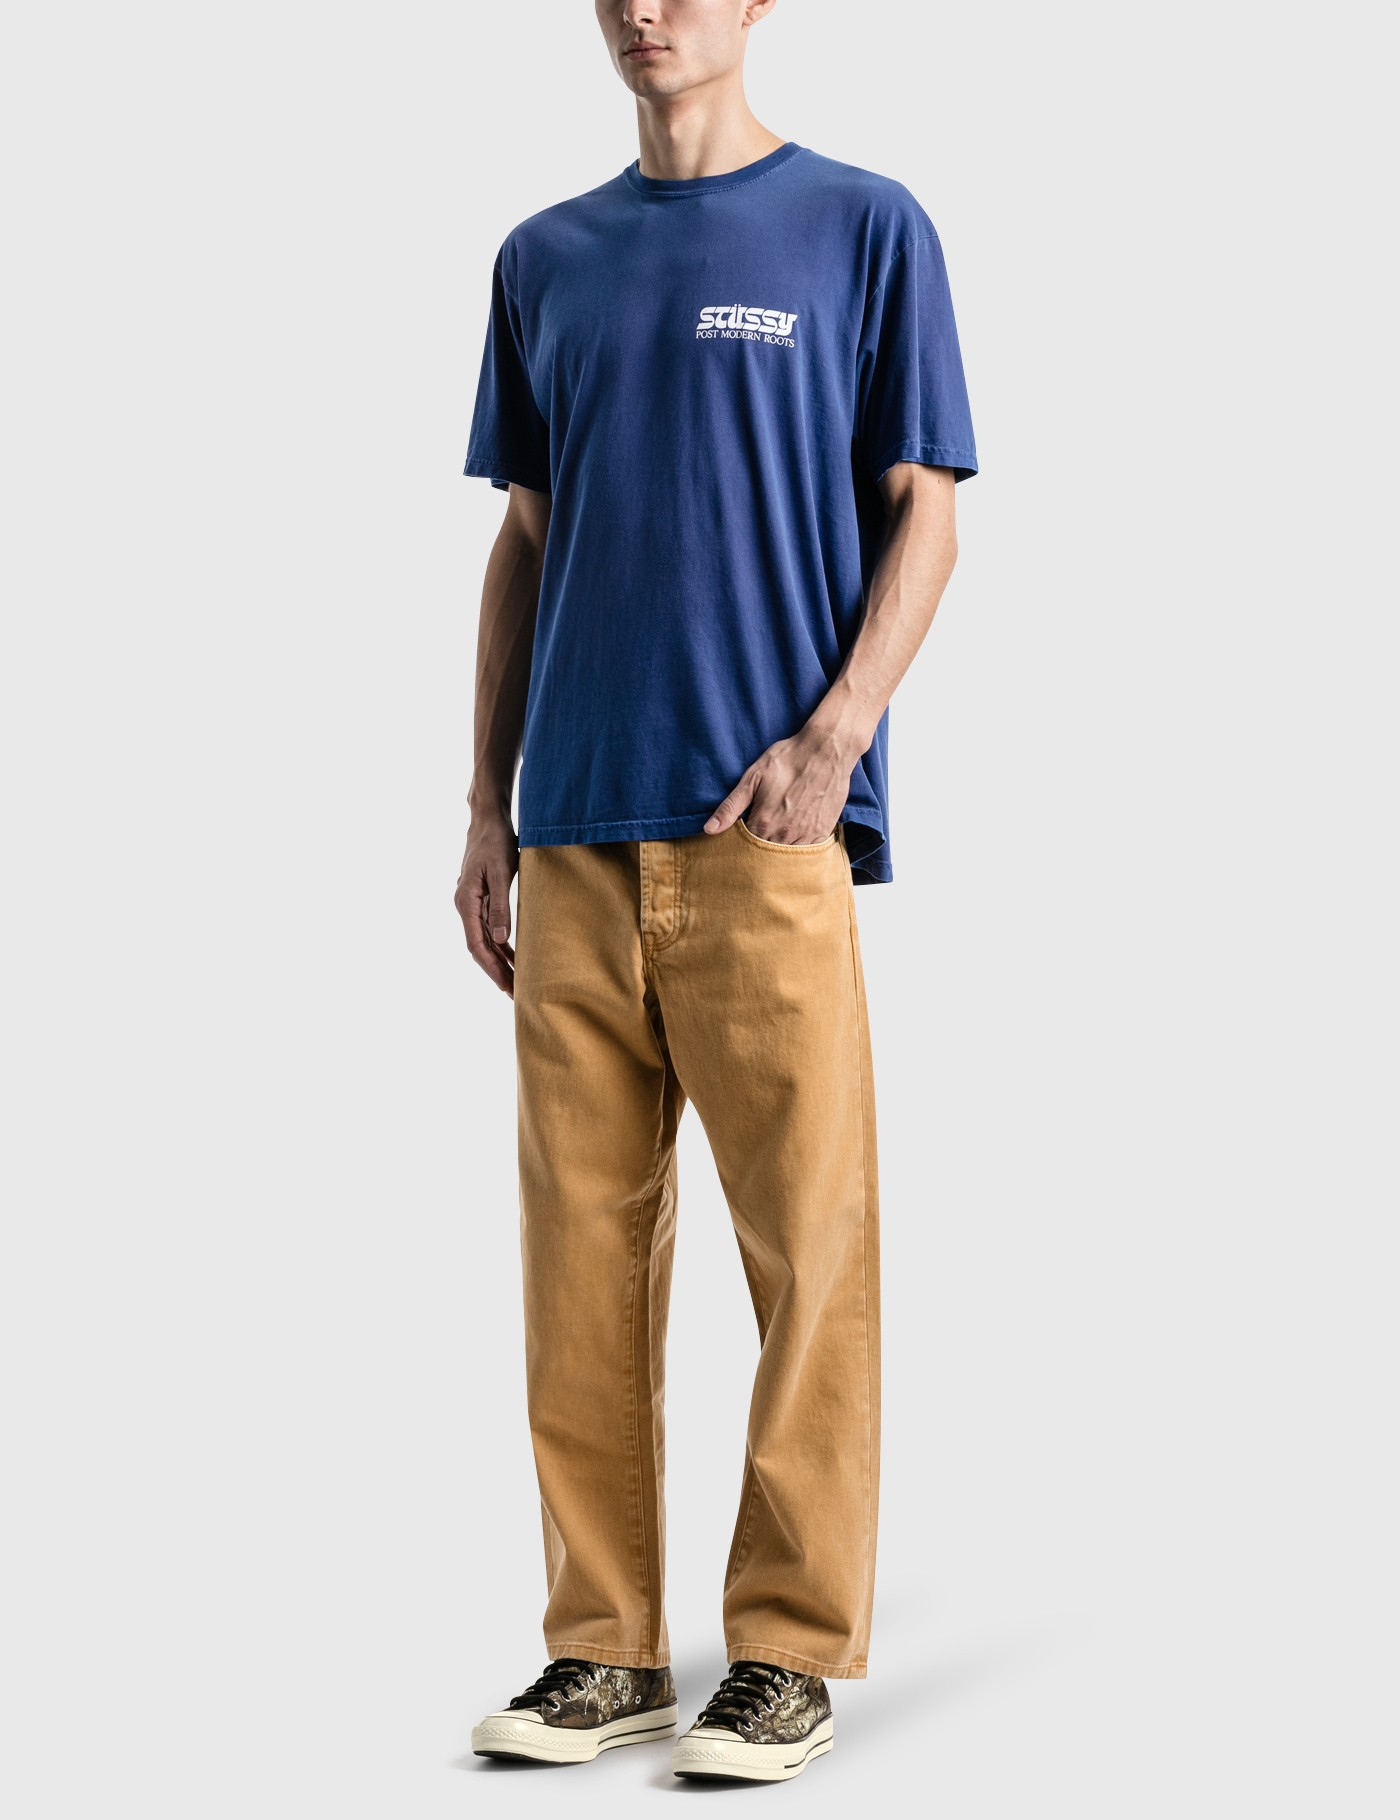 Stussy Post Modern Roots Pig Dyed T-Shirt